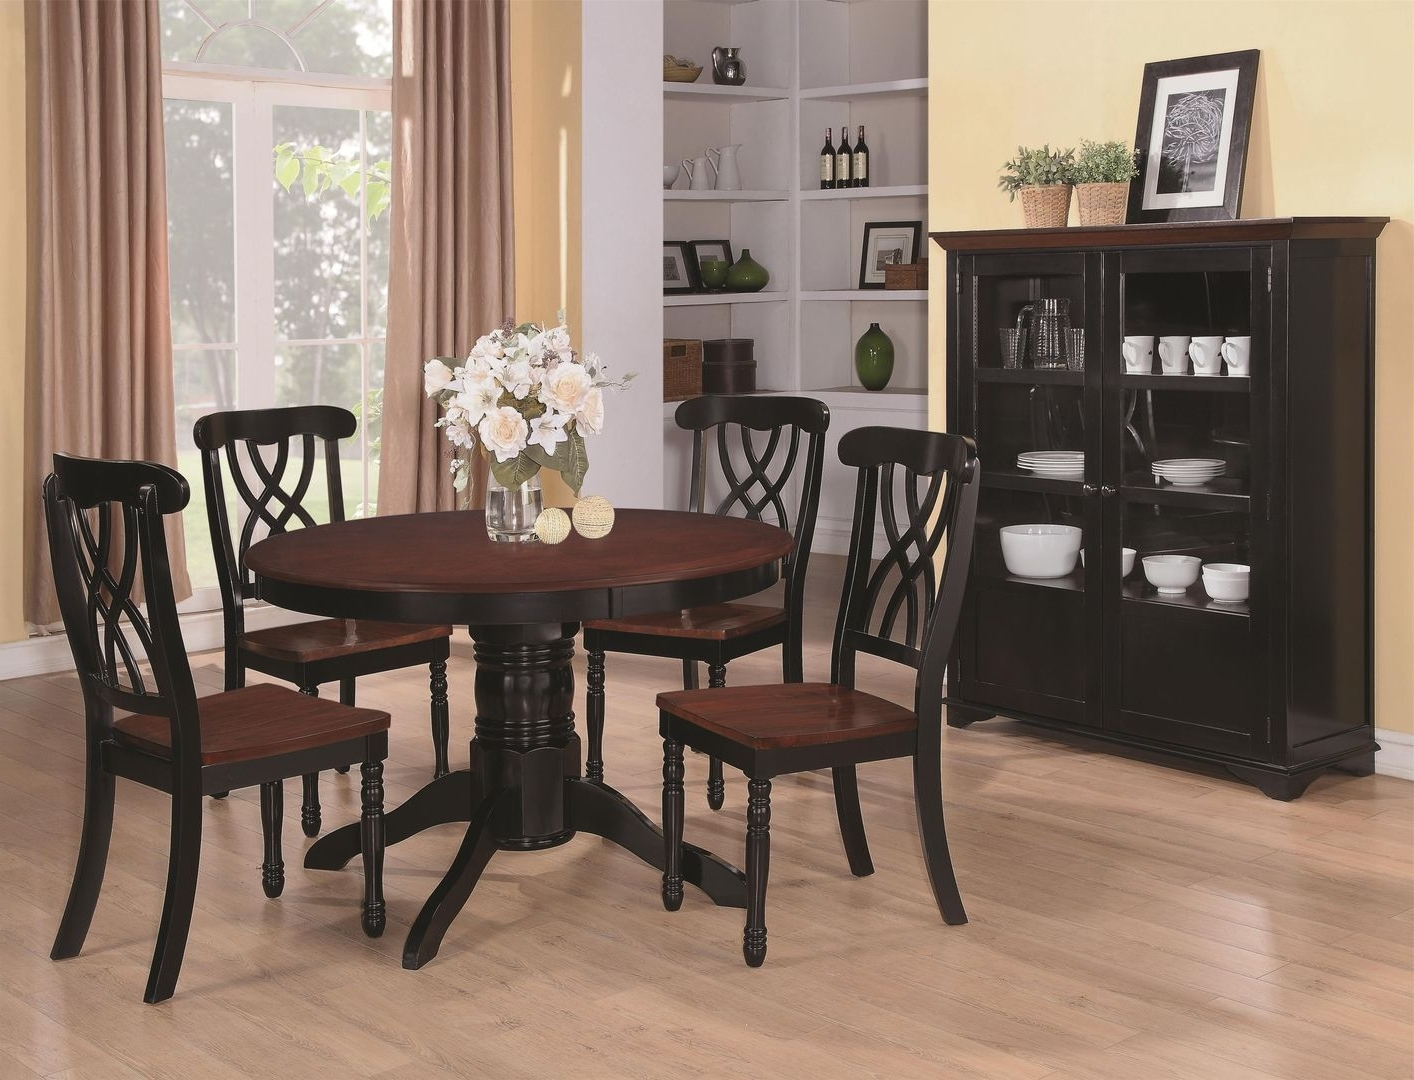 Recent Dark Solid Wood Dining Tables Regarding Addison Black And Cherry Wood Dining Table – Steal A Sofa Furniture (View 11 of 25)